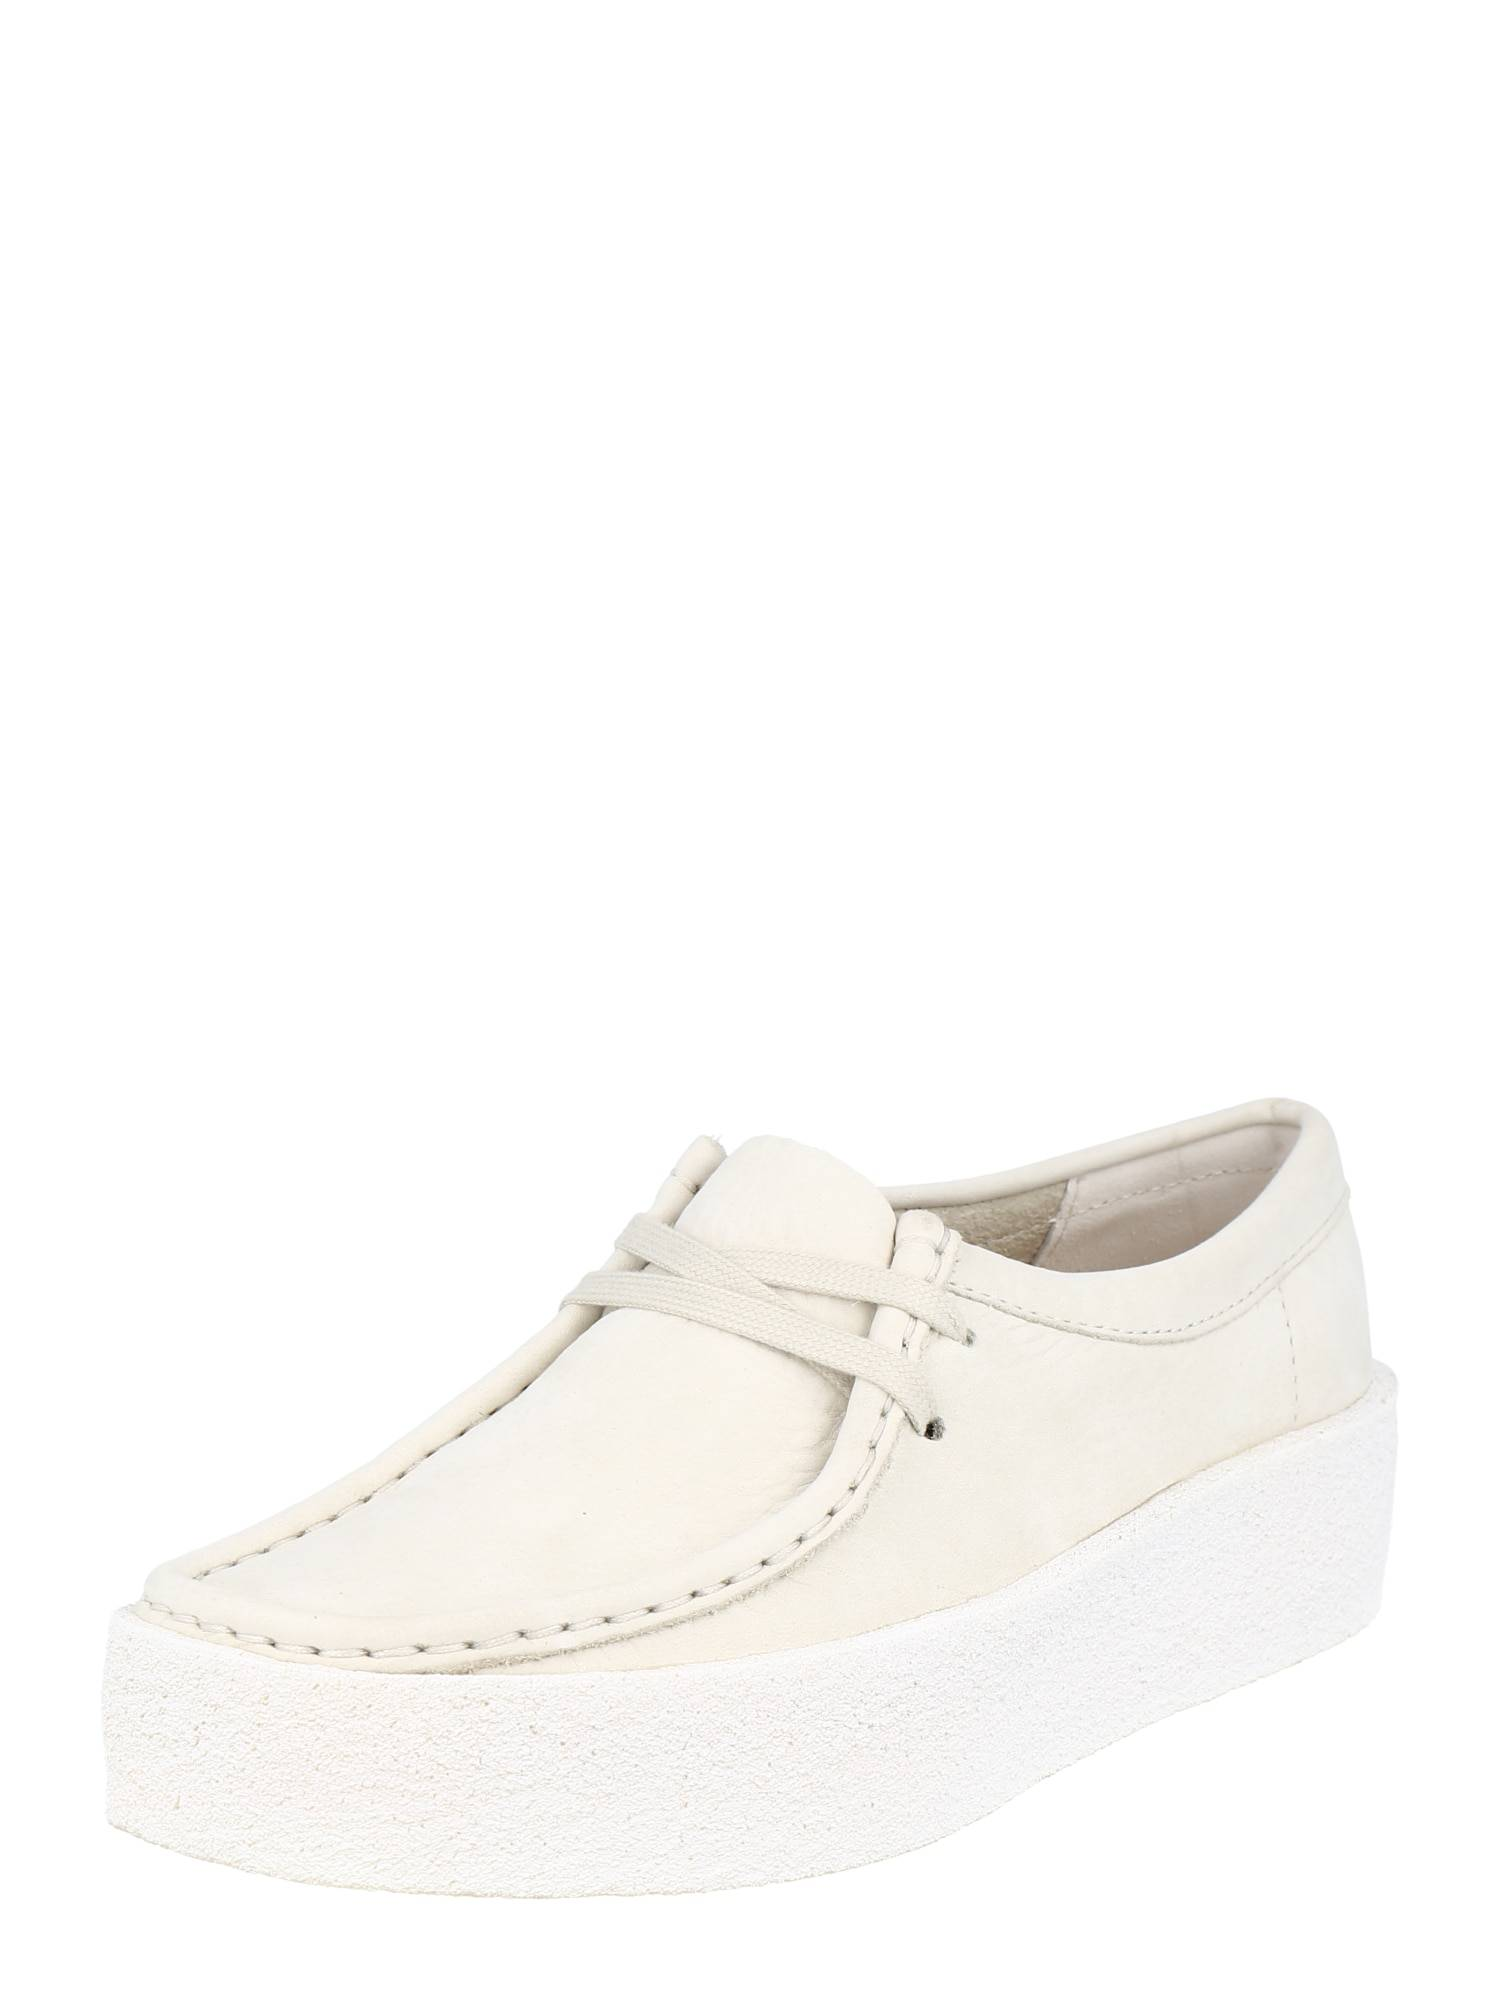 Clarks Originals Chaussure à lacets 'Wallabee Cup'  - Blanc - Taille: 6.5 - female